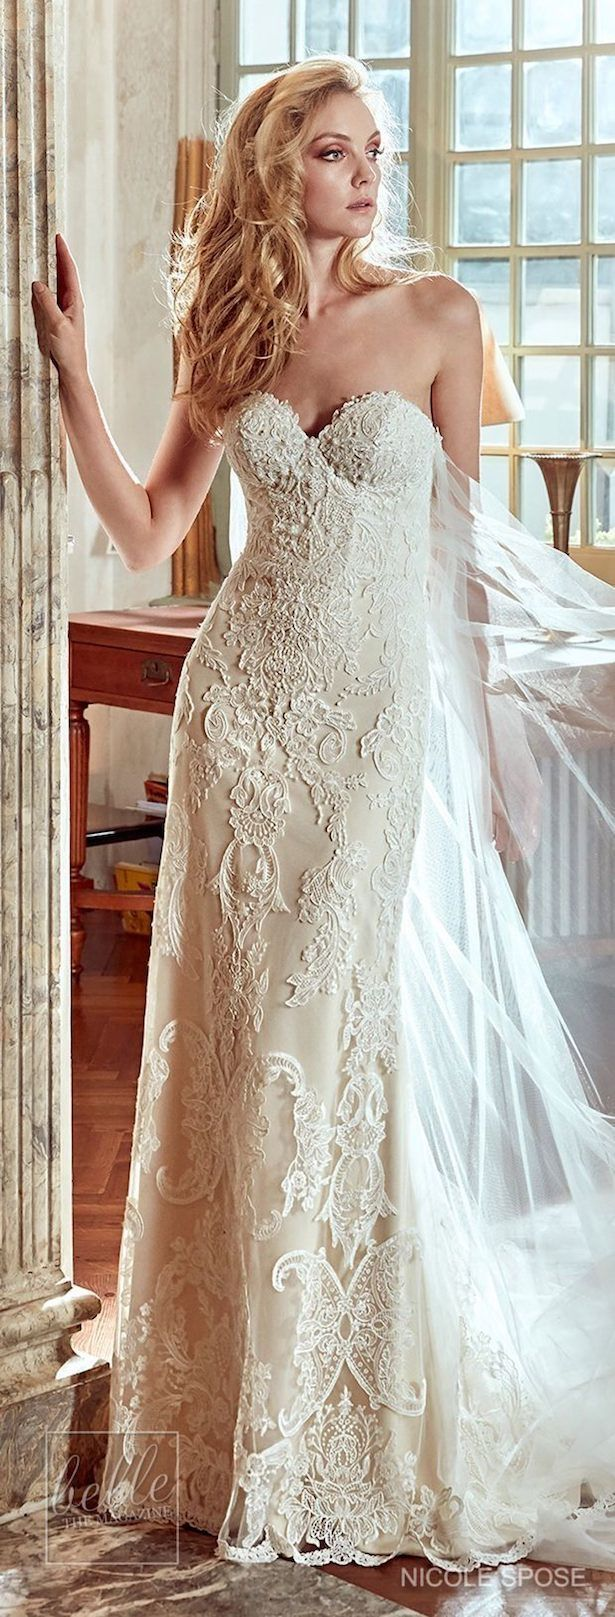 Nicole spose wedding dress collection fitted lace bridal gown